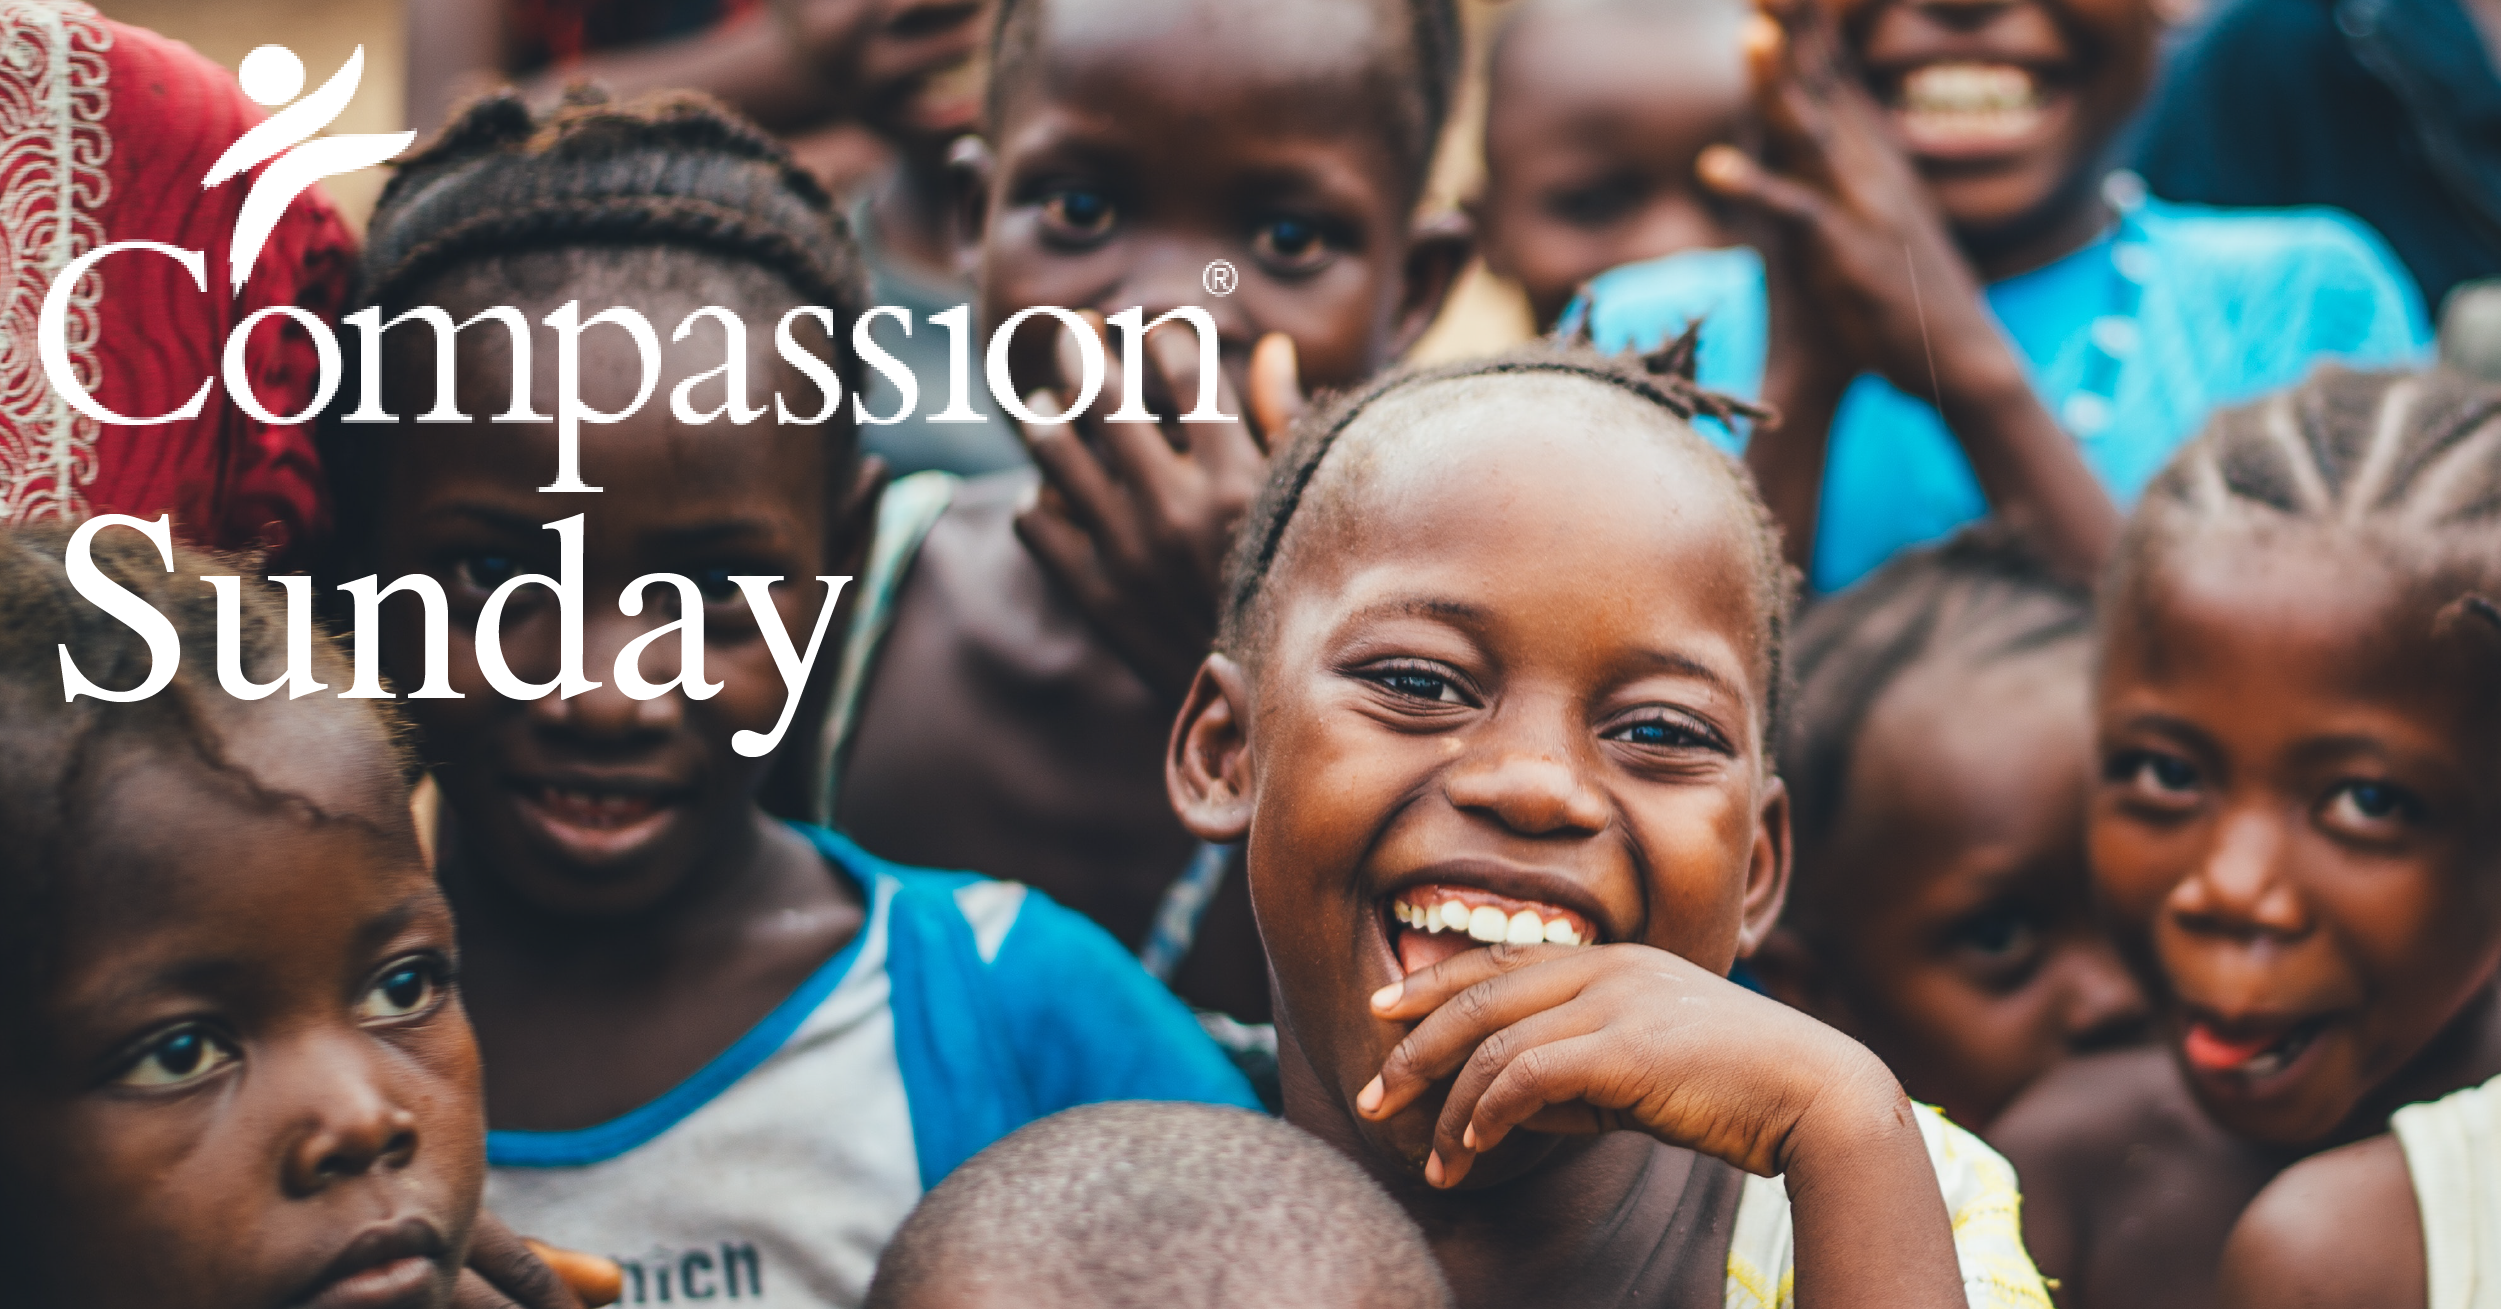 Find out more about Compassion UK